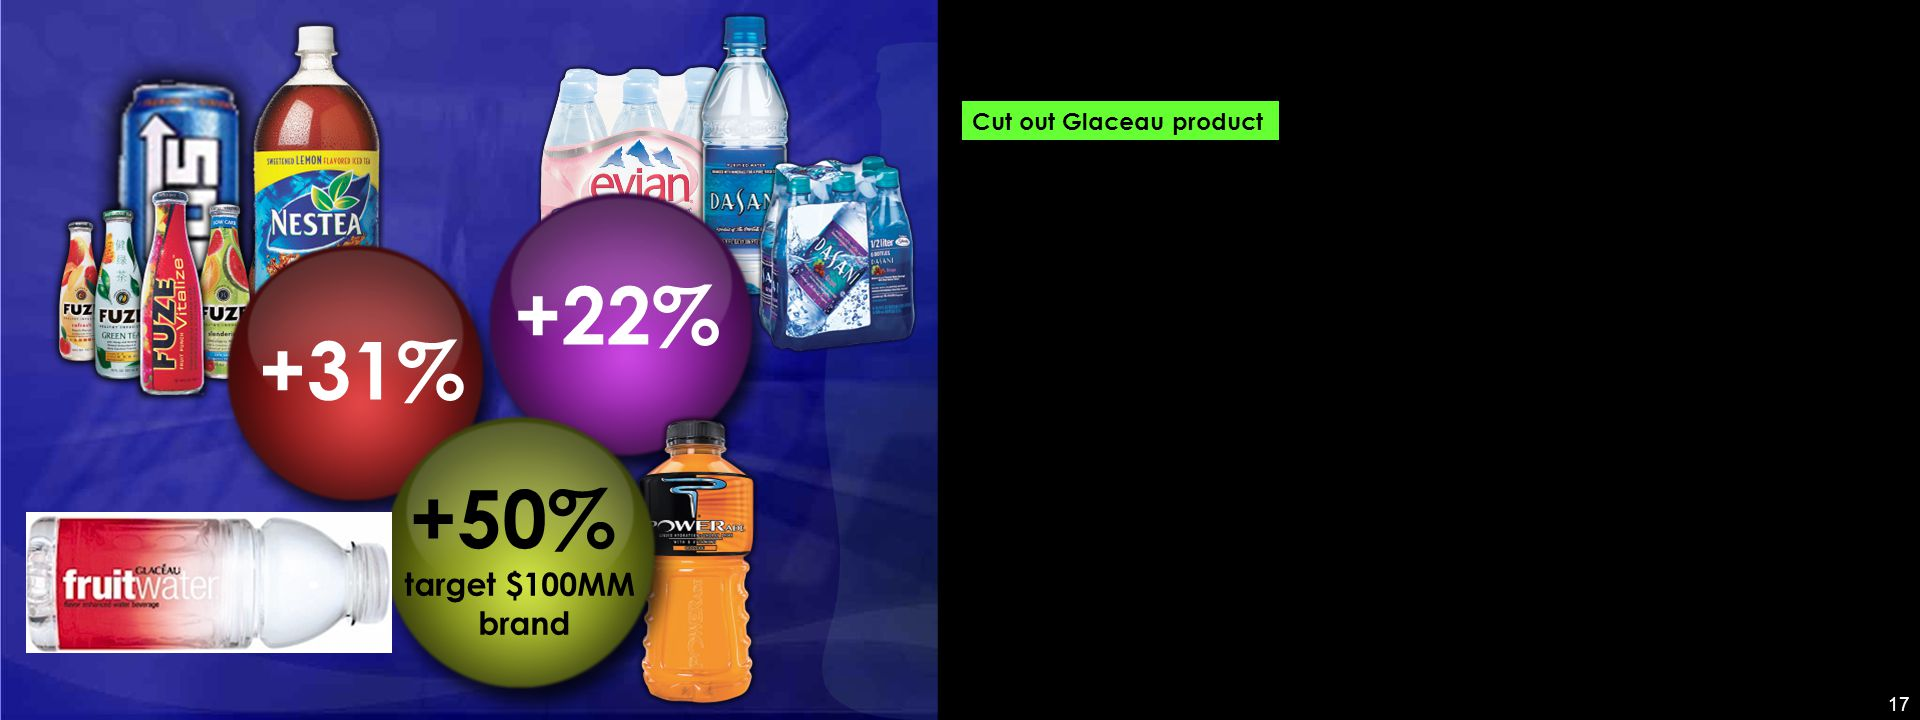 17 +31% +22% +50% target $100MM brand Cut out Glaceau product